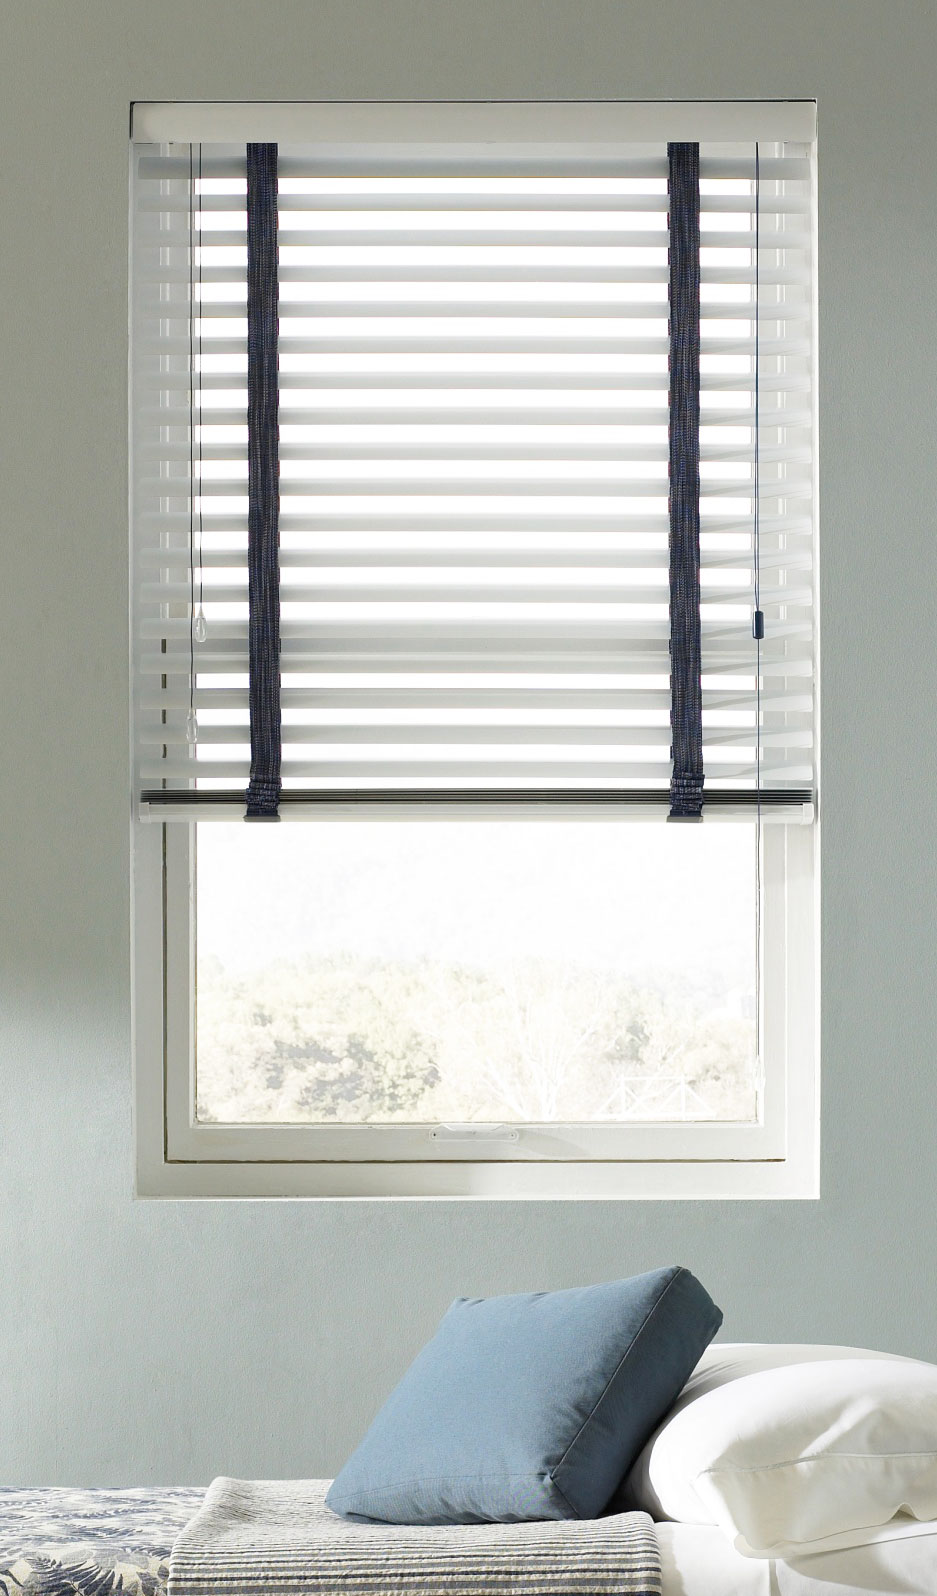 White Classic Collection® Aluminum Blinds with blue ladders against a light blue wall in a bedroom